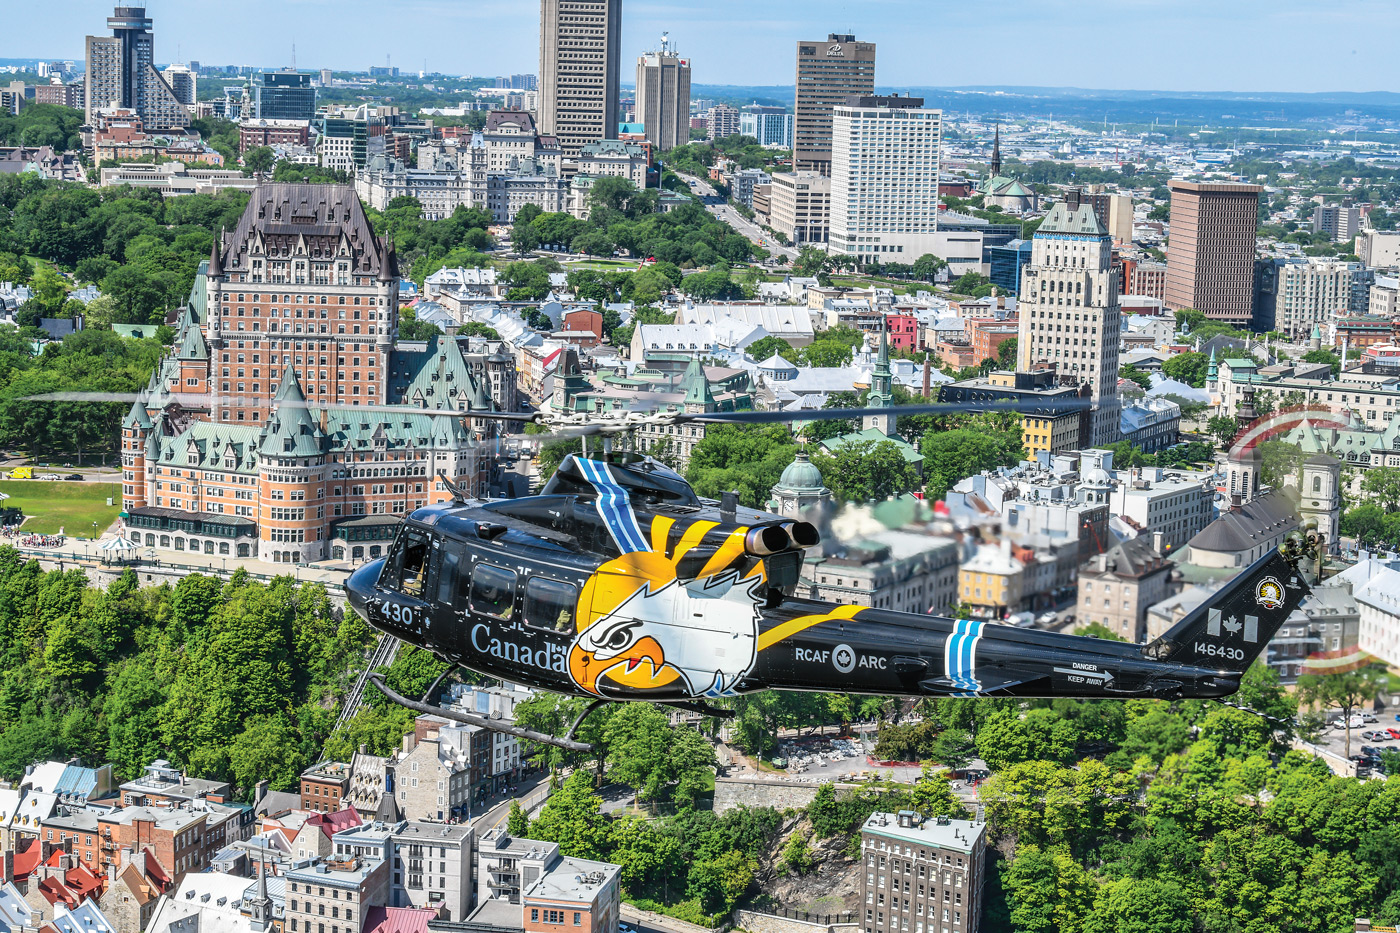 The 430 Squadron anniversary bird soars over Quebec City. Mike Reyno Photo